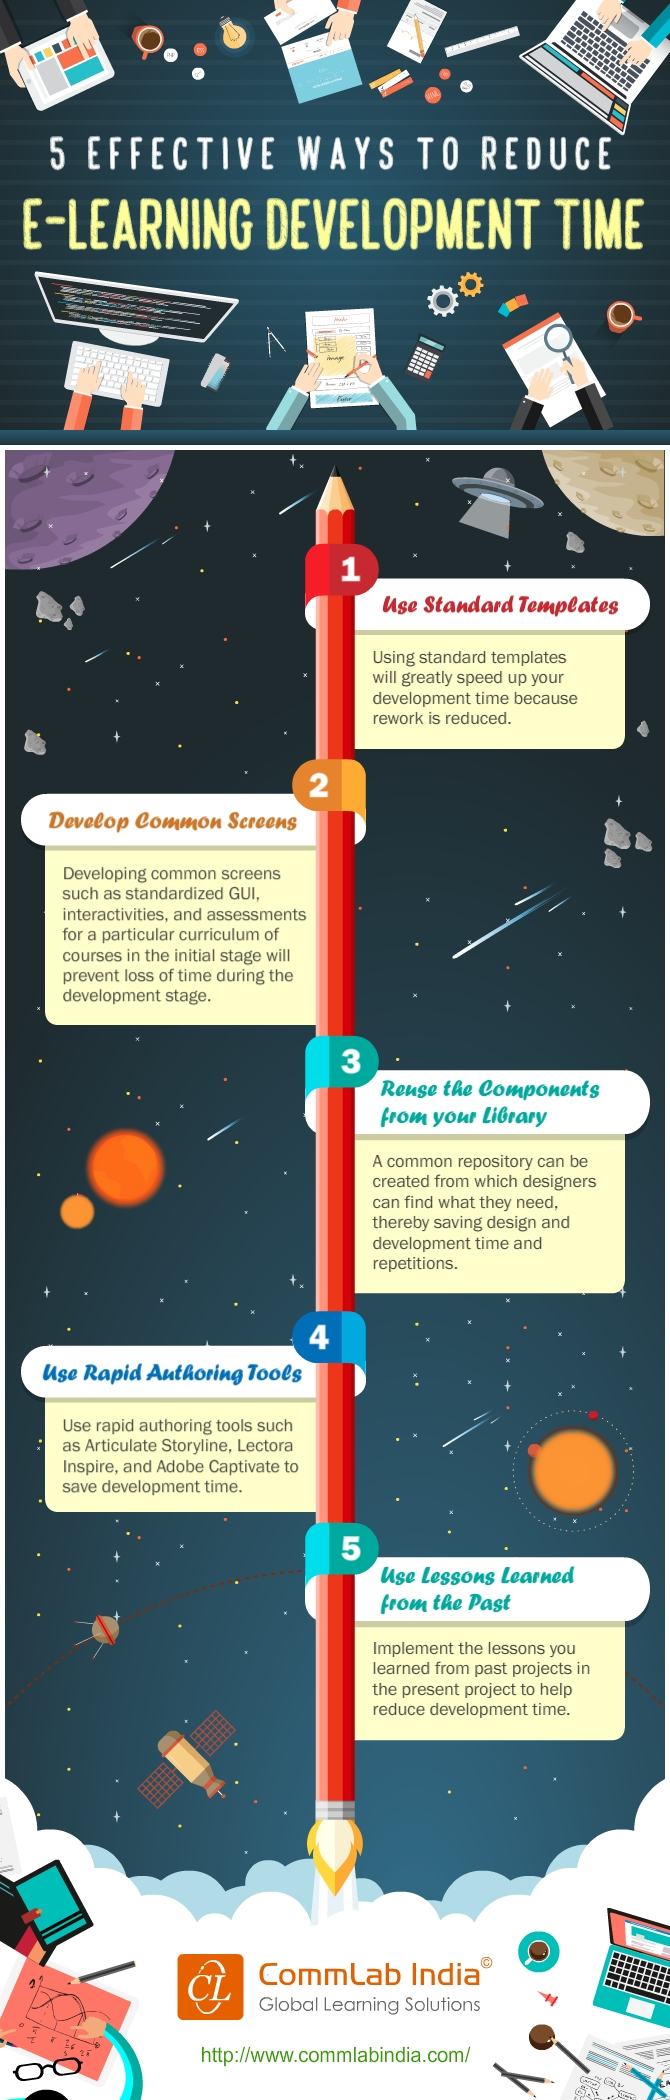 5 Effective Ways to Reduce E-learning Development Time [Infographic]